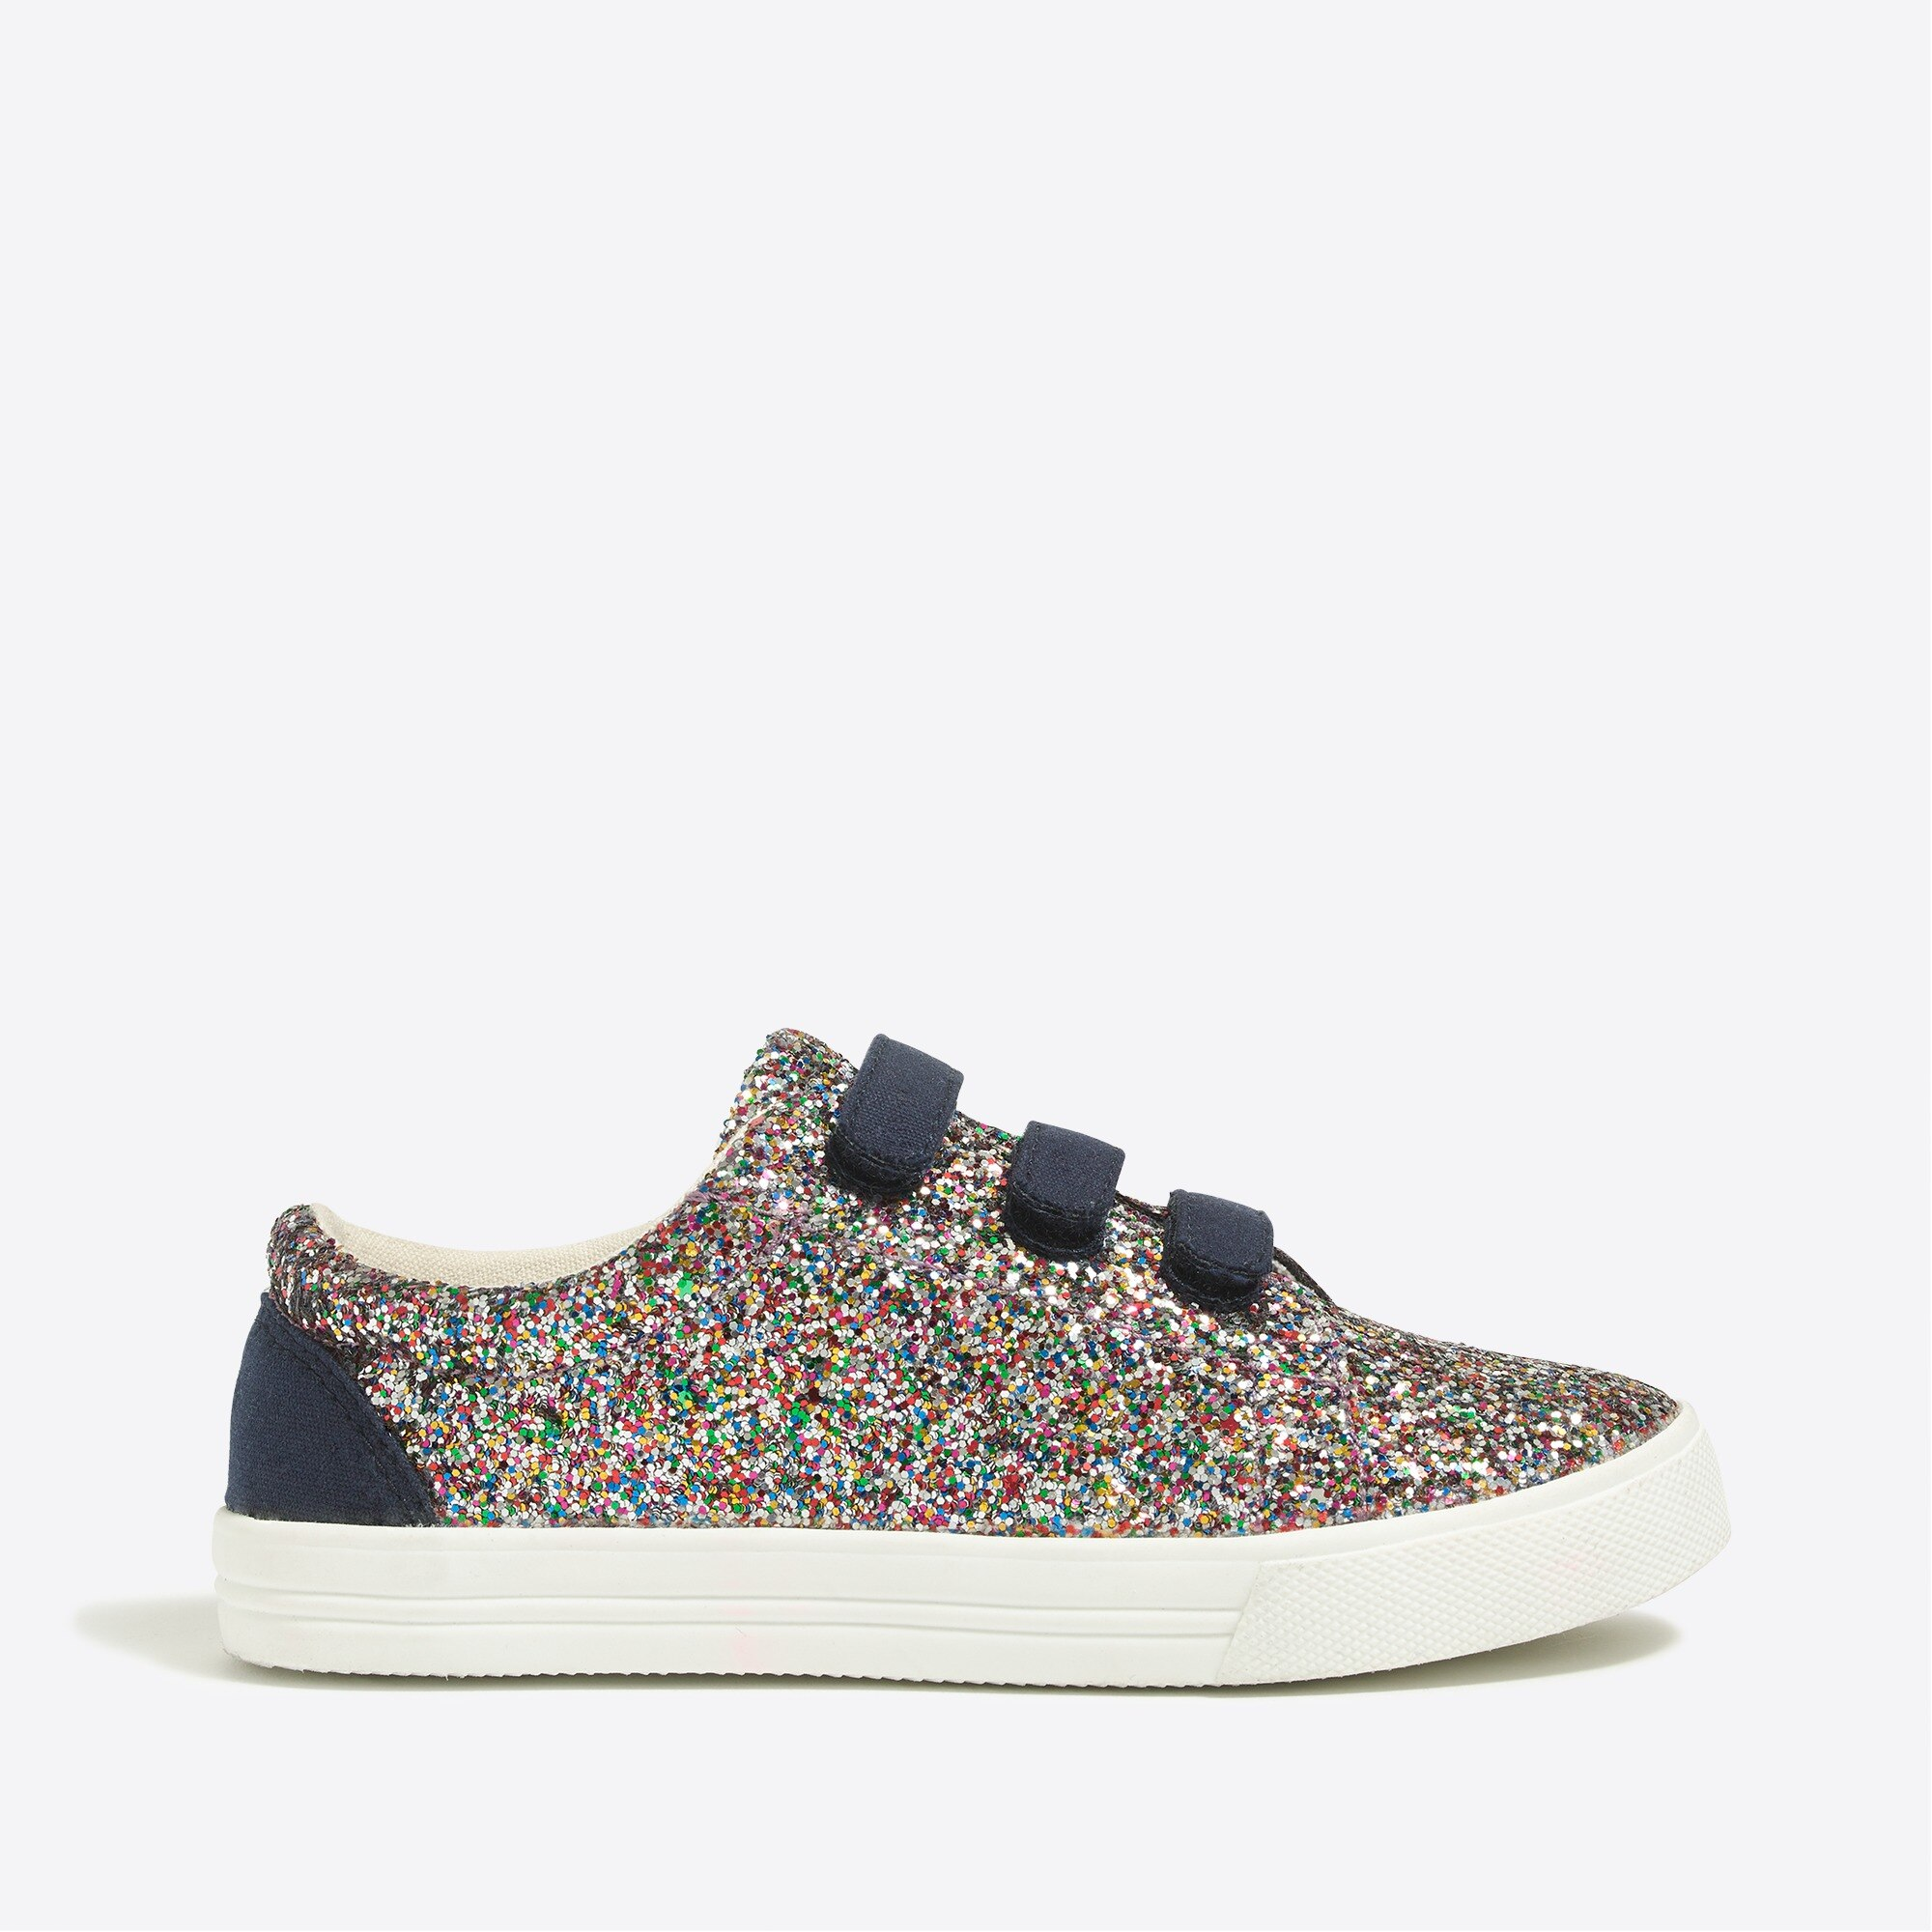 Image 3 for Girls' glitter Velcro® sneakers